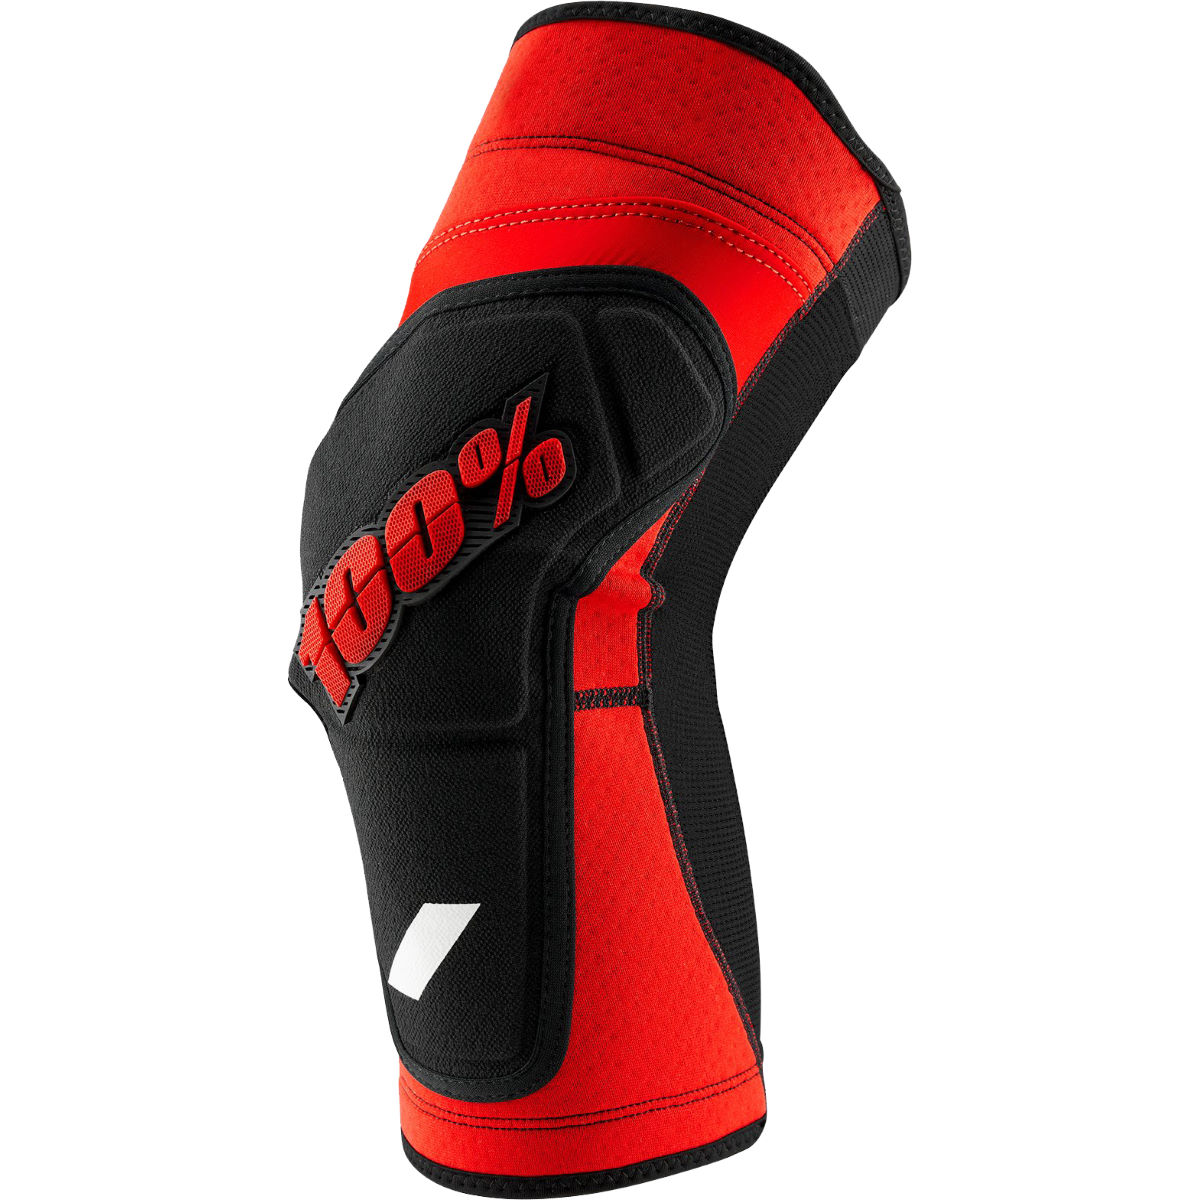 100% Ridecamp Knee Guard - Xl Red/black  Knee Pads